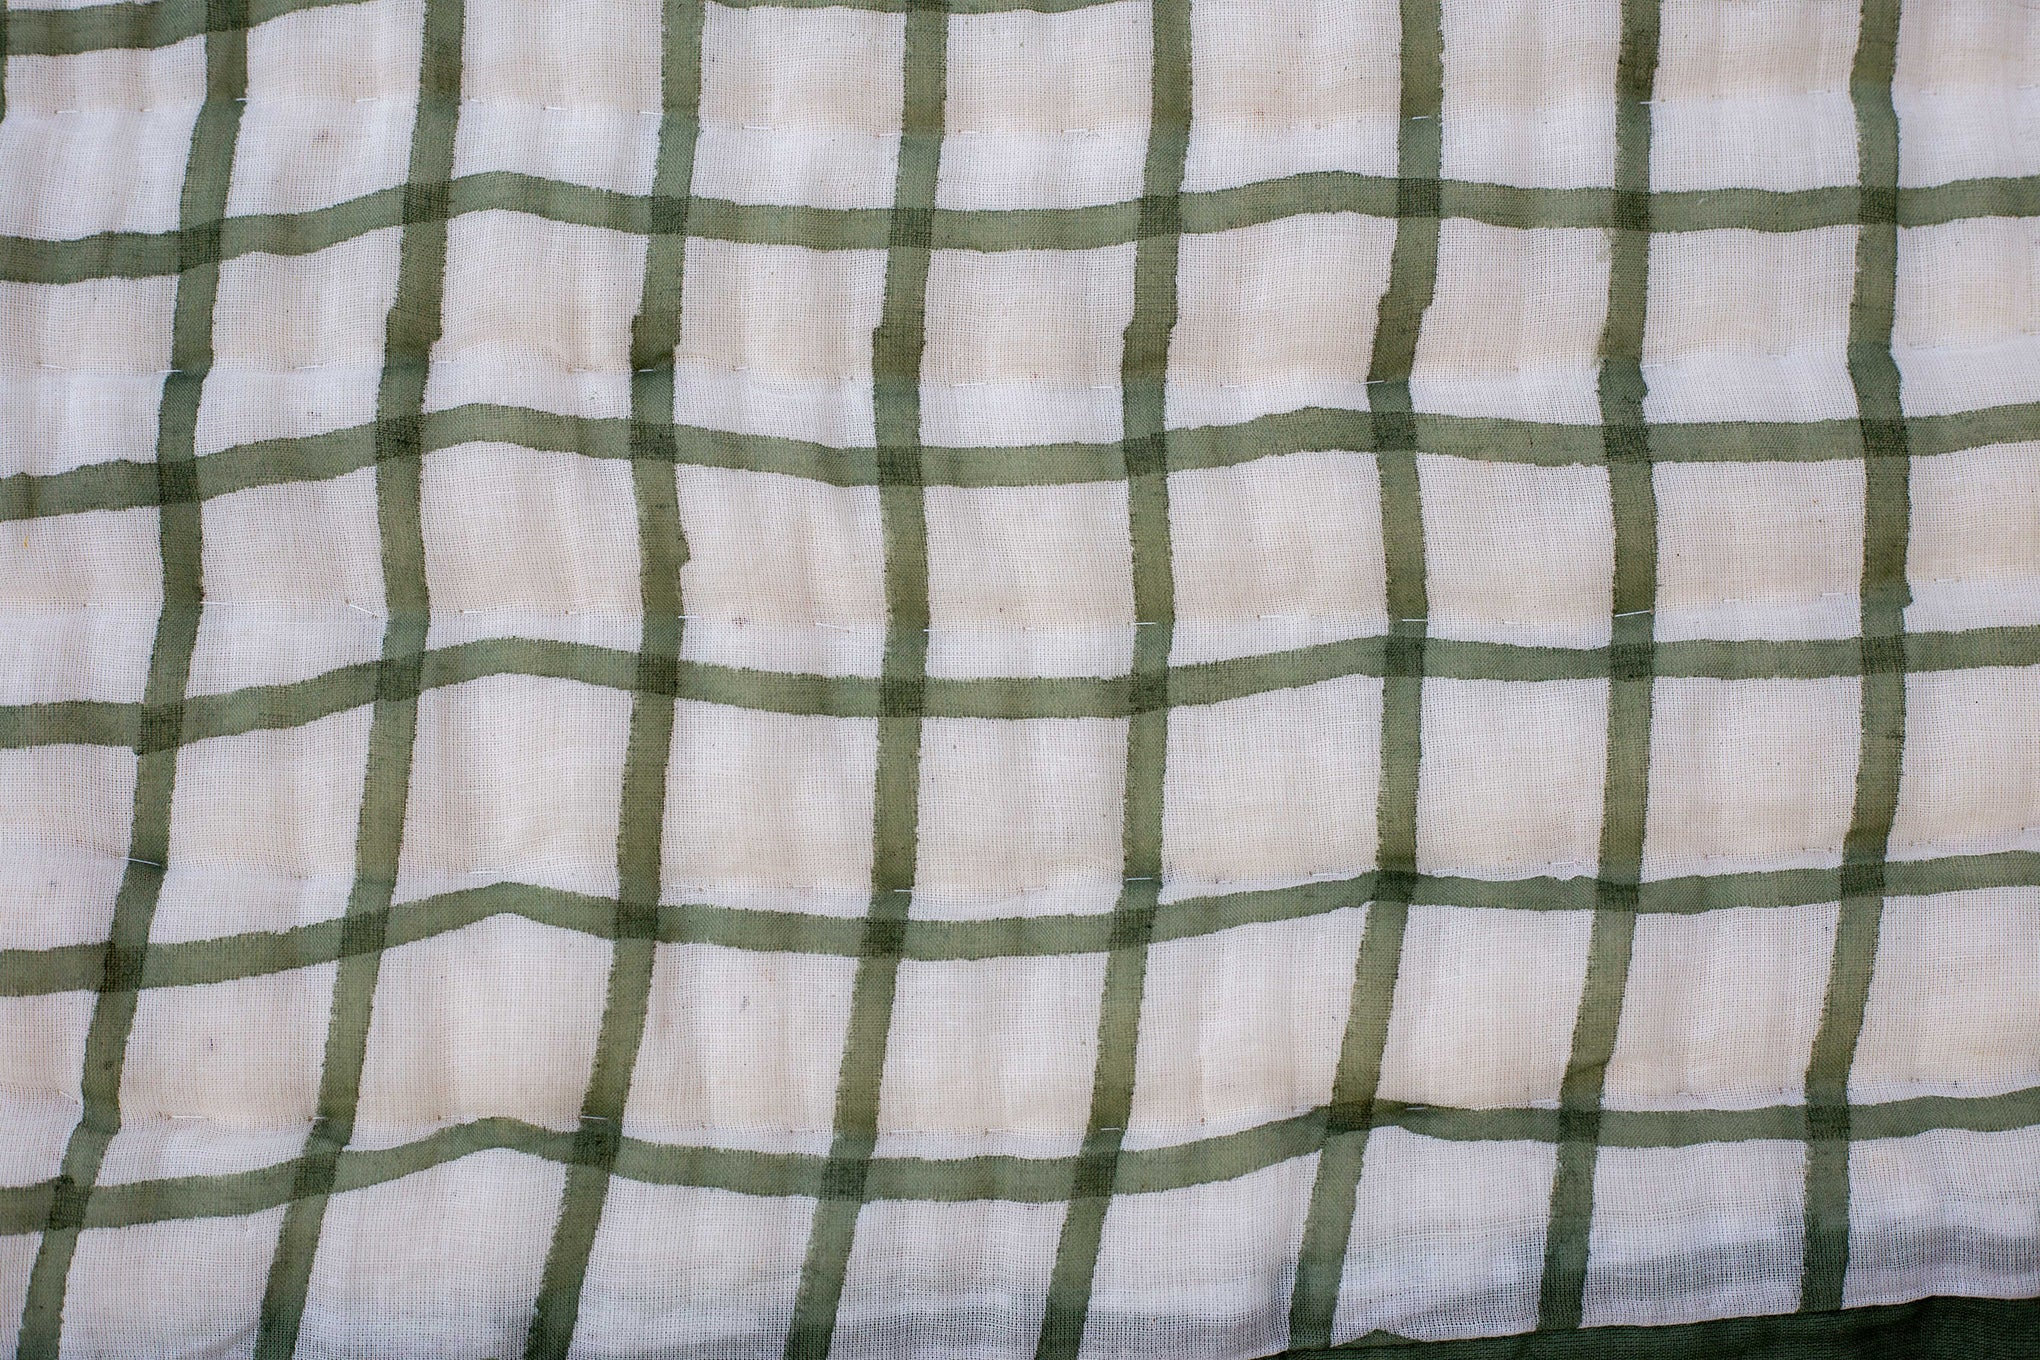 All New Roysha 2021 Queen Quilt Collection,100 Percent Handmade, Hand Block printed Quilt, Jaipuri Quilt, Hand Quilted, Olive Green Checks